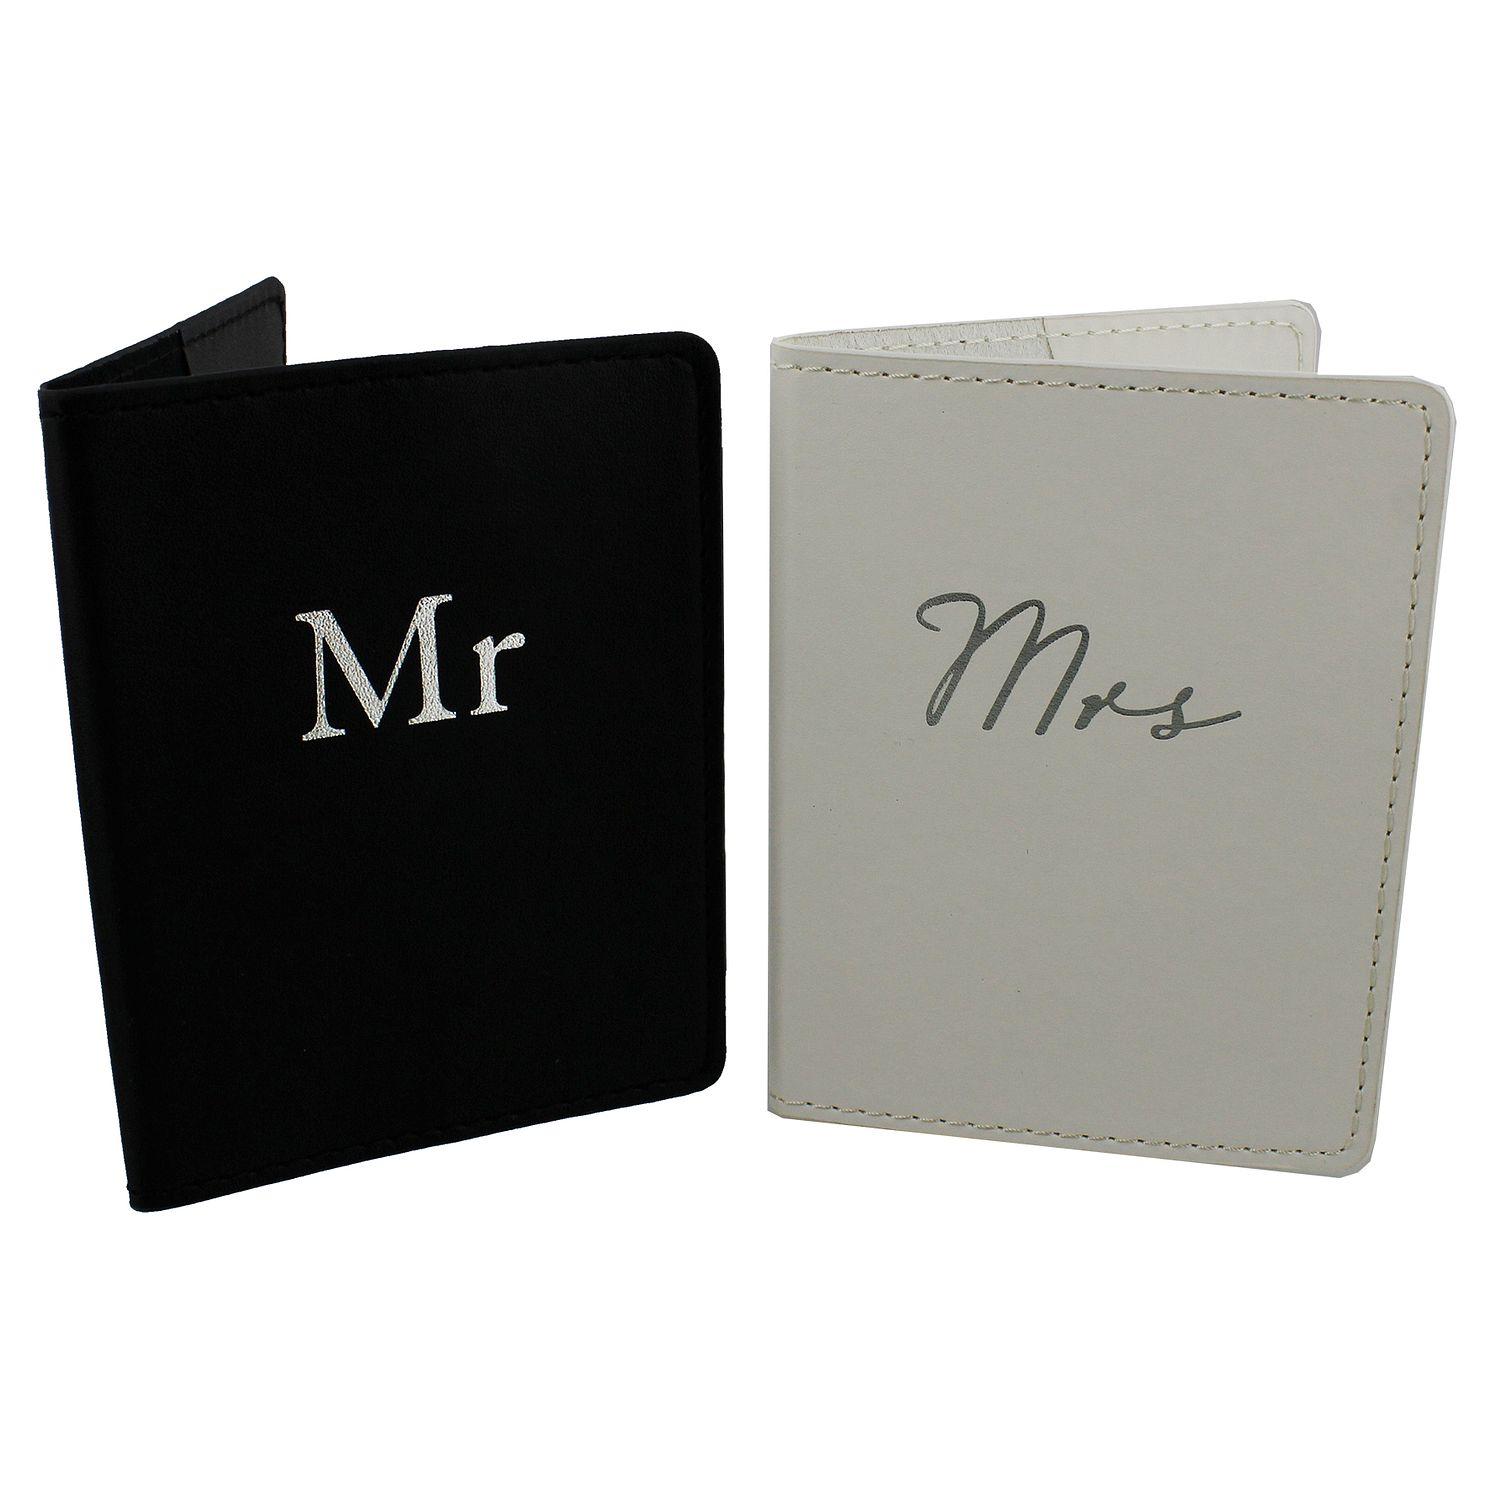 Amore Mr & Mrs Passport Covers Set - Product number 8197024